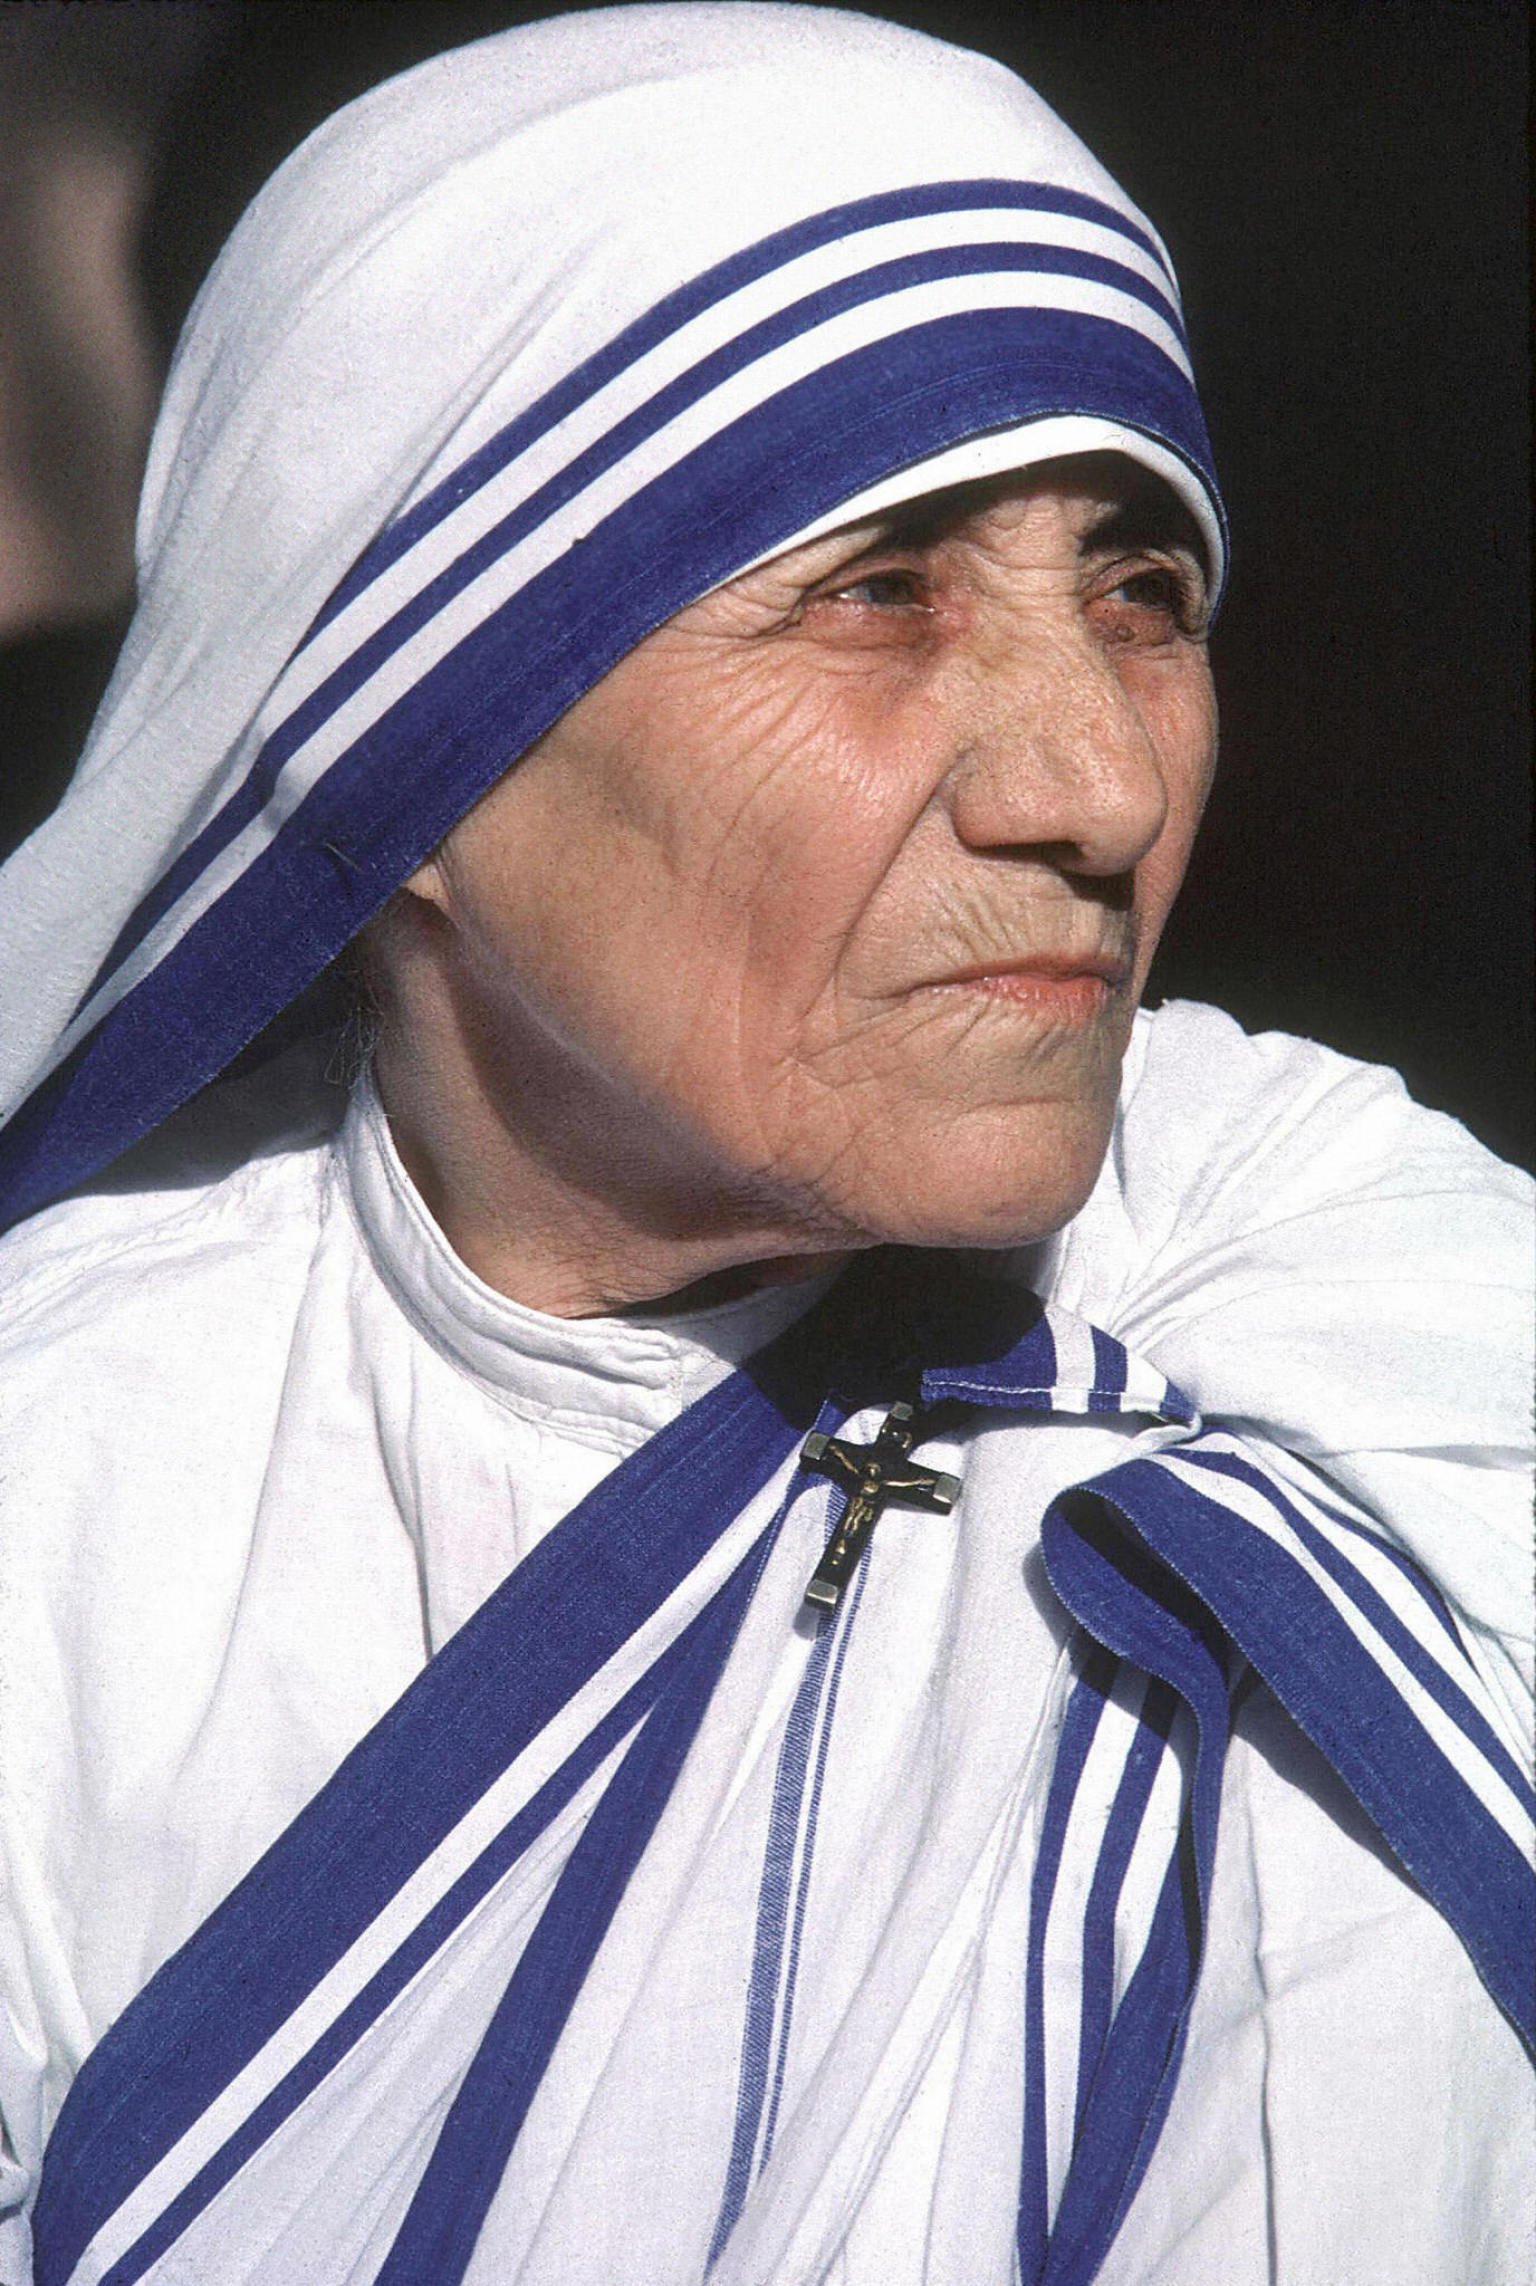 an essay on mother teresa essay mother love dow ipnodns ru imedge dubai essay on my role model mother teresa read